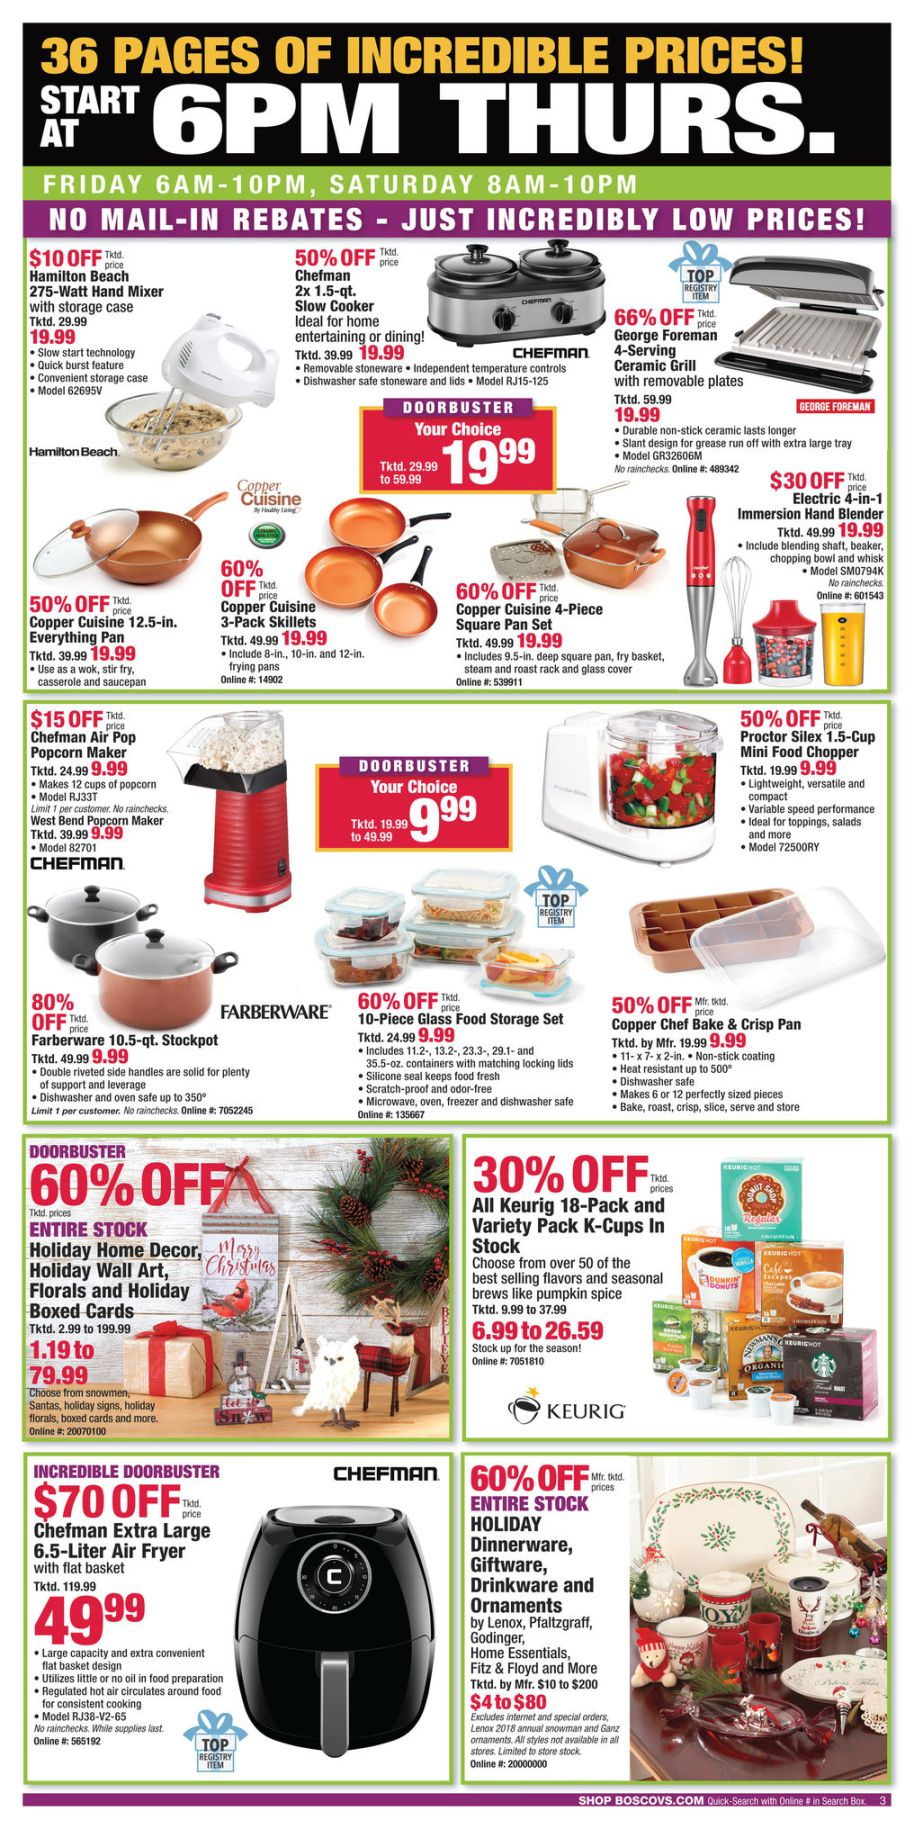 photograph relating to Boscovs Coupons Printable named Boscovs Black Friday Commercials Product sales Offers Doorbusters 2018